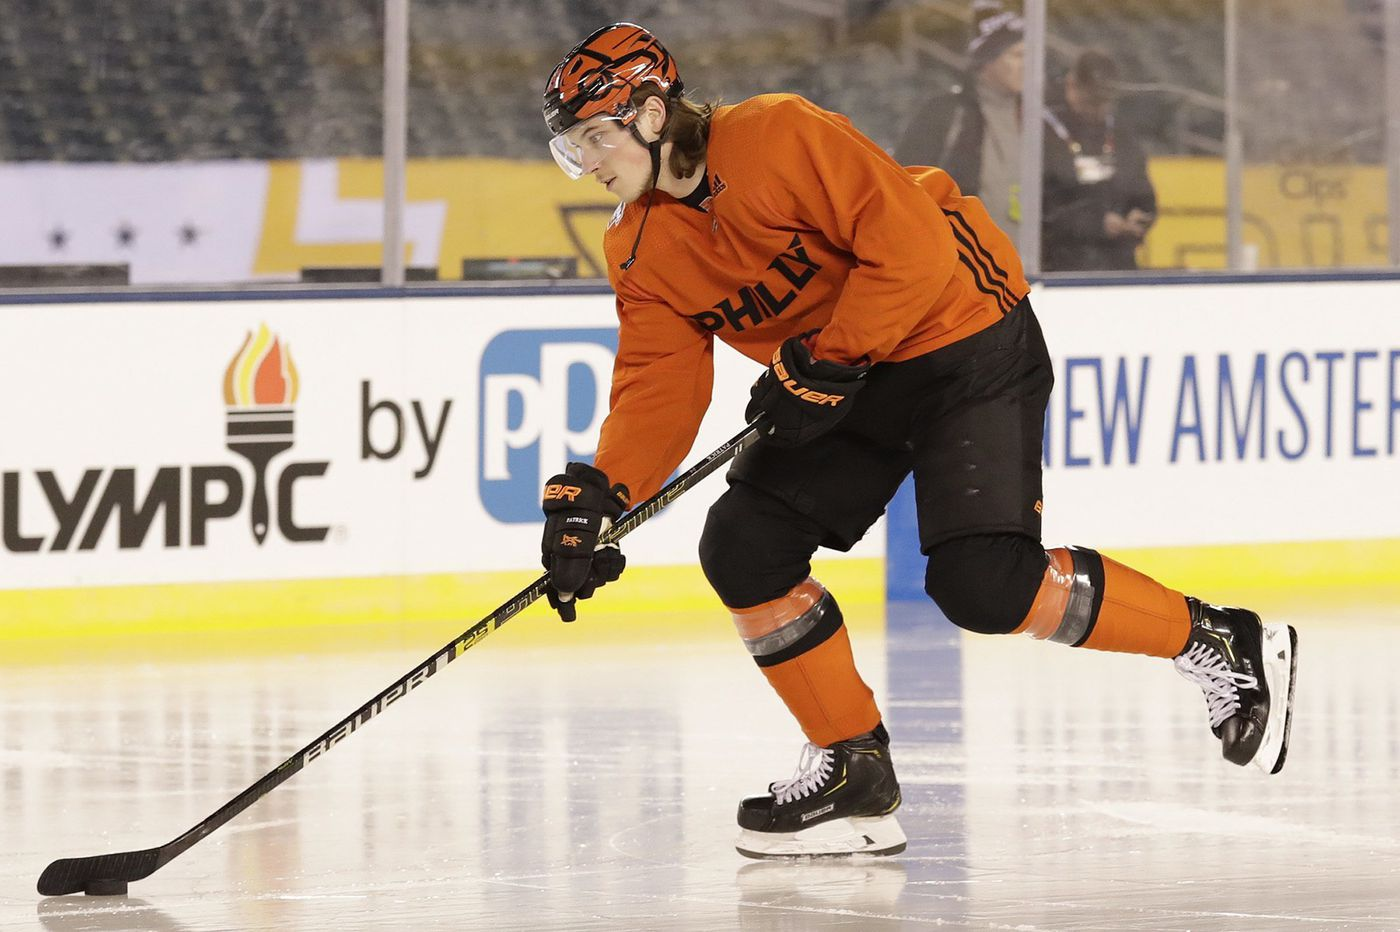 Nolan Patrick not on Flyers' camp roster, but 20-year-old prospect Egor Zamula is; Mark Friedman signs